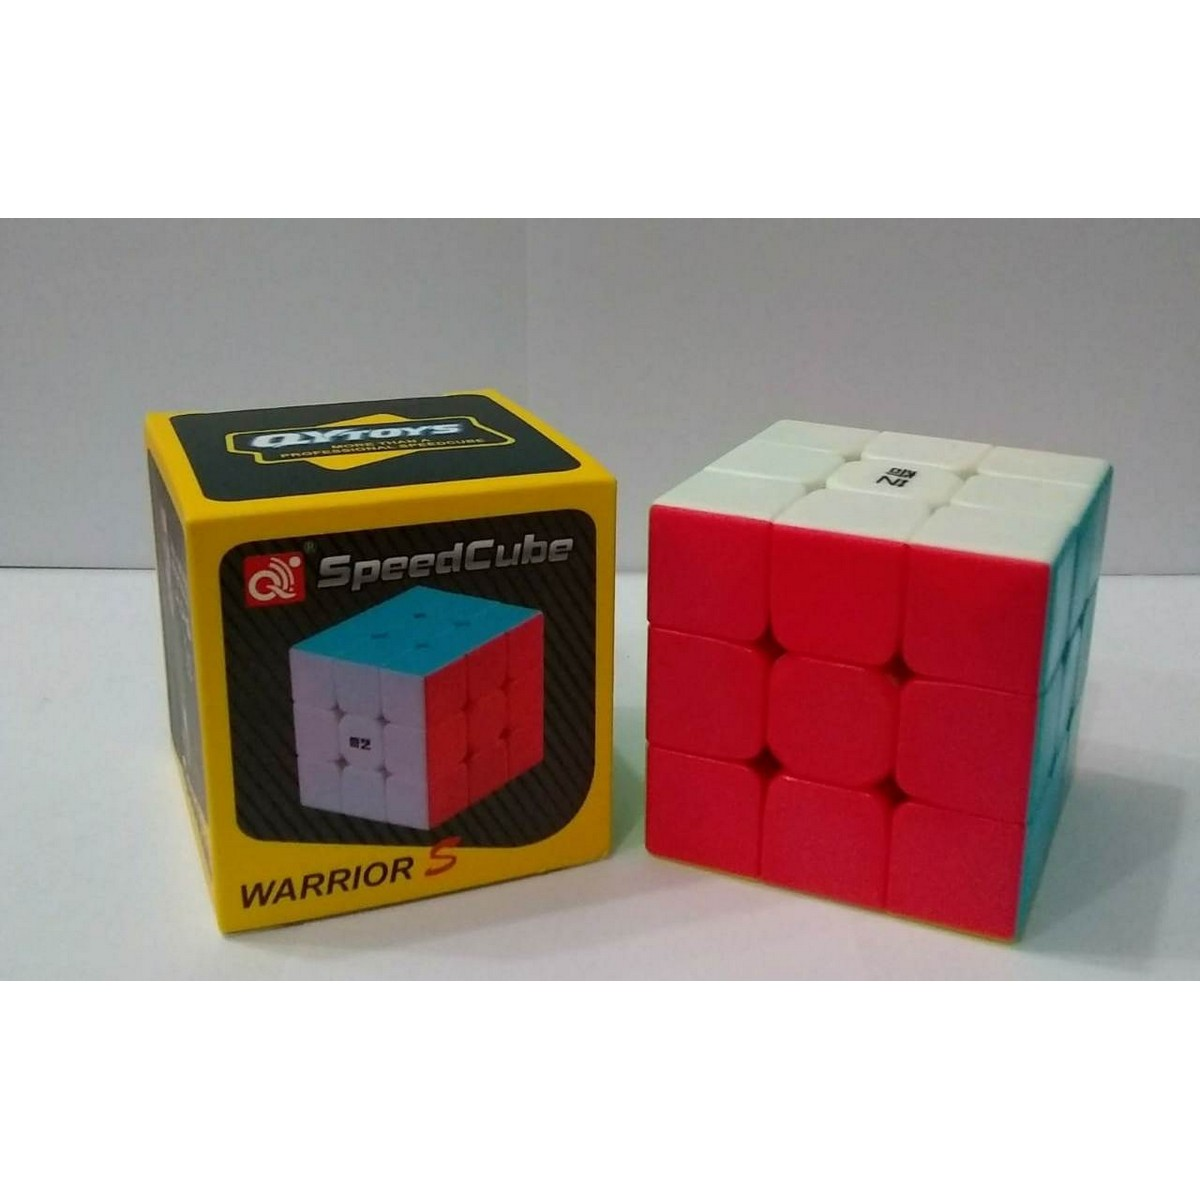 QY Rubic Cube 3x3 With Solve Algorithm A Grade Quality Puzzle Toy Educational Toy